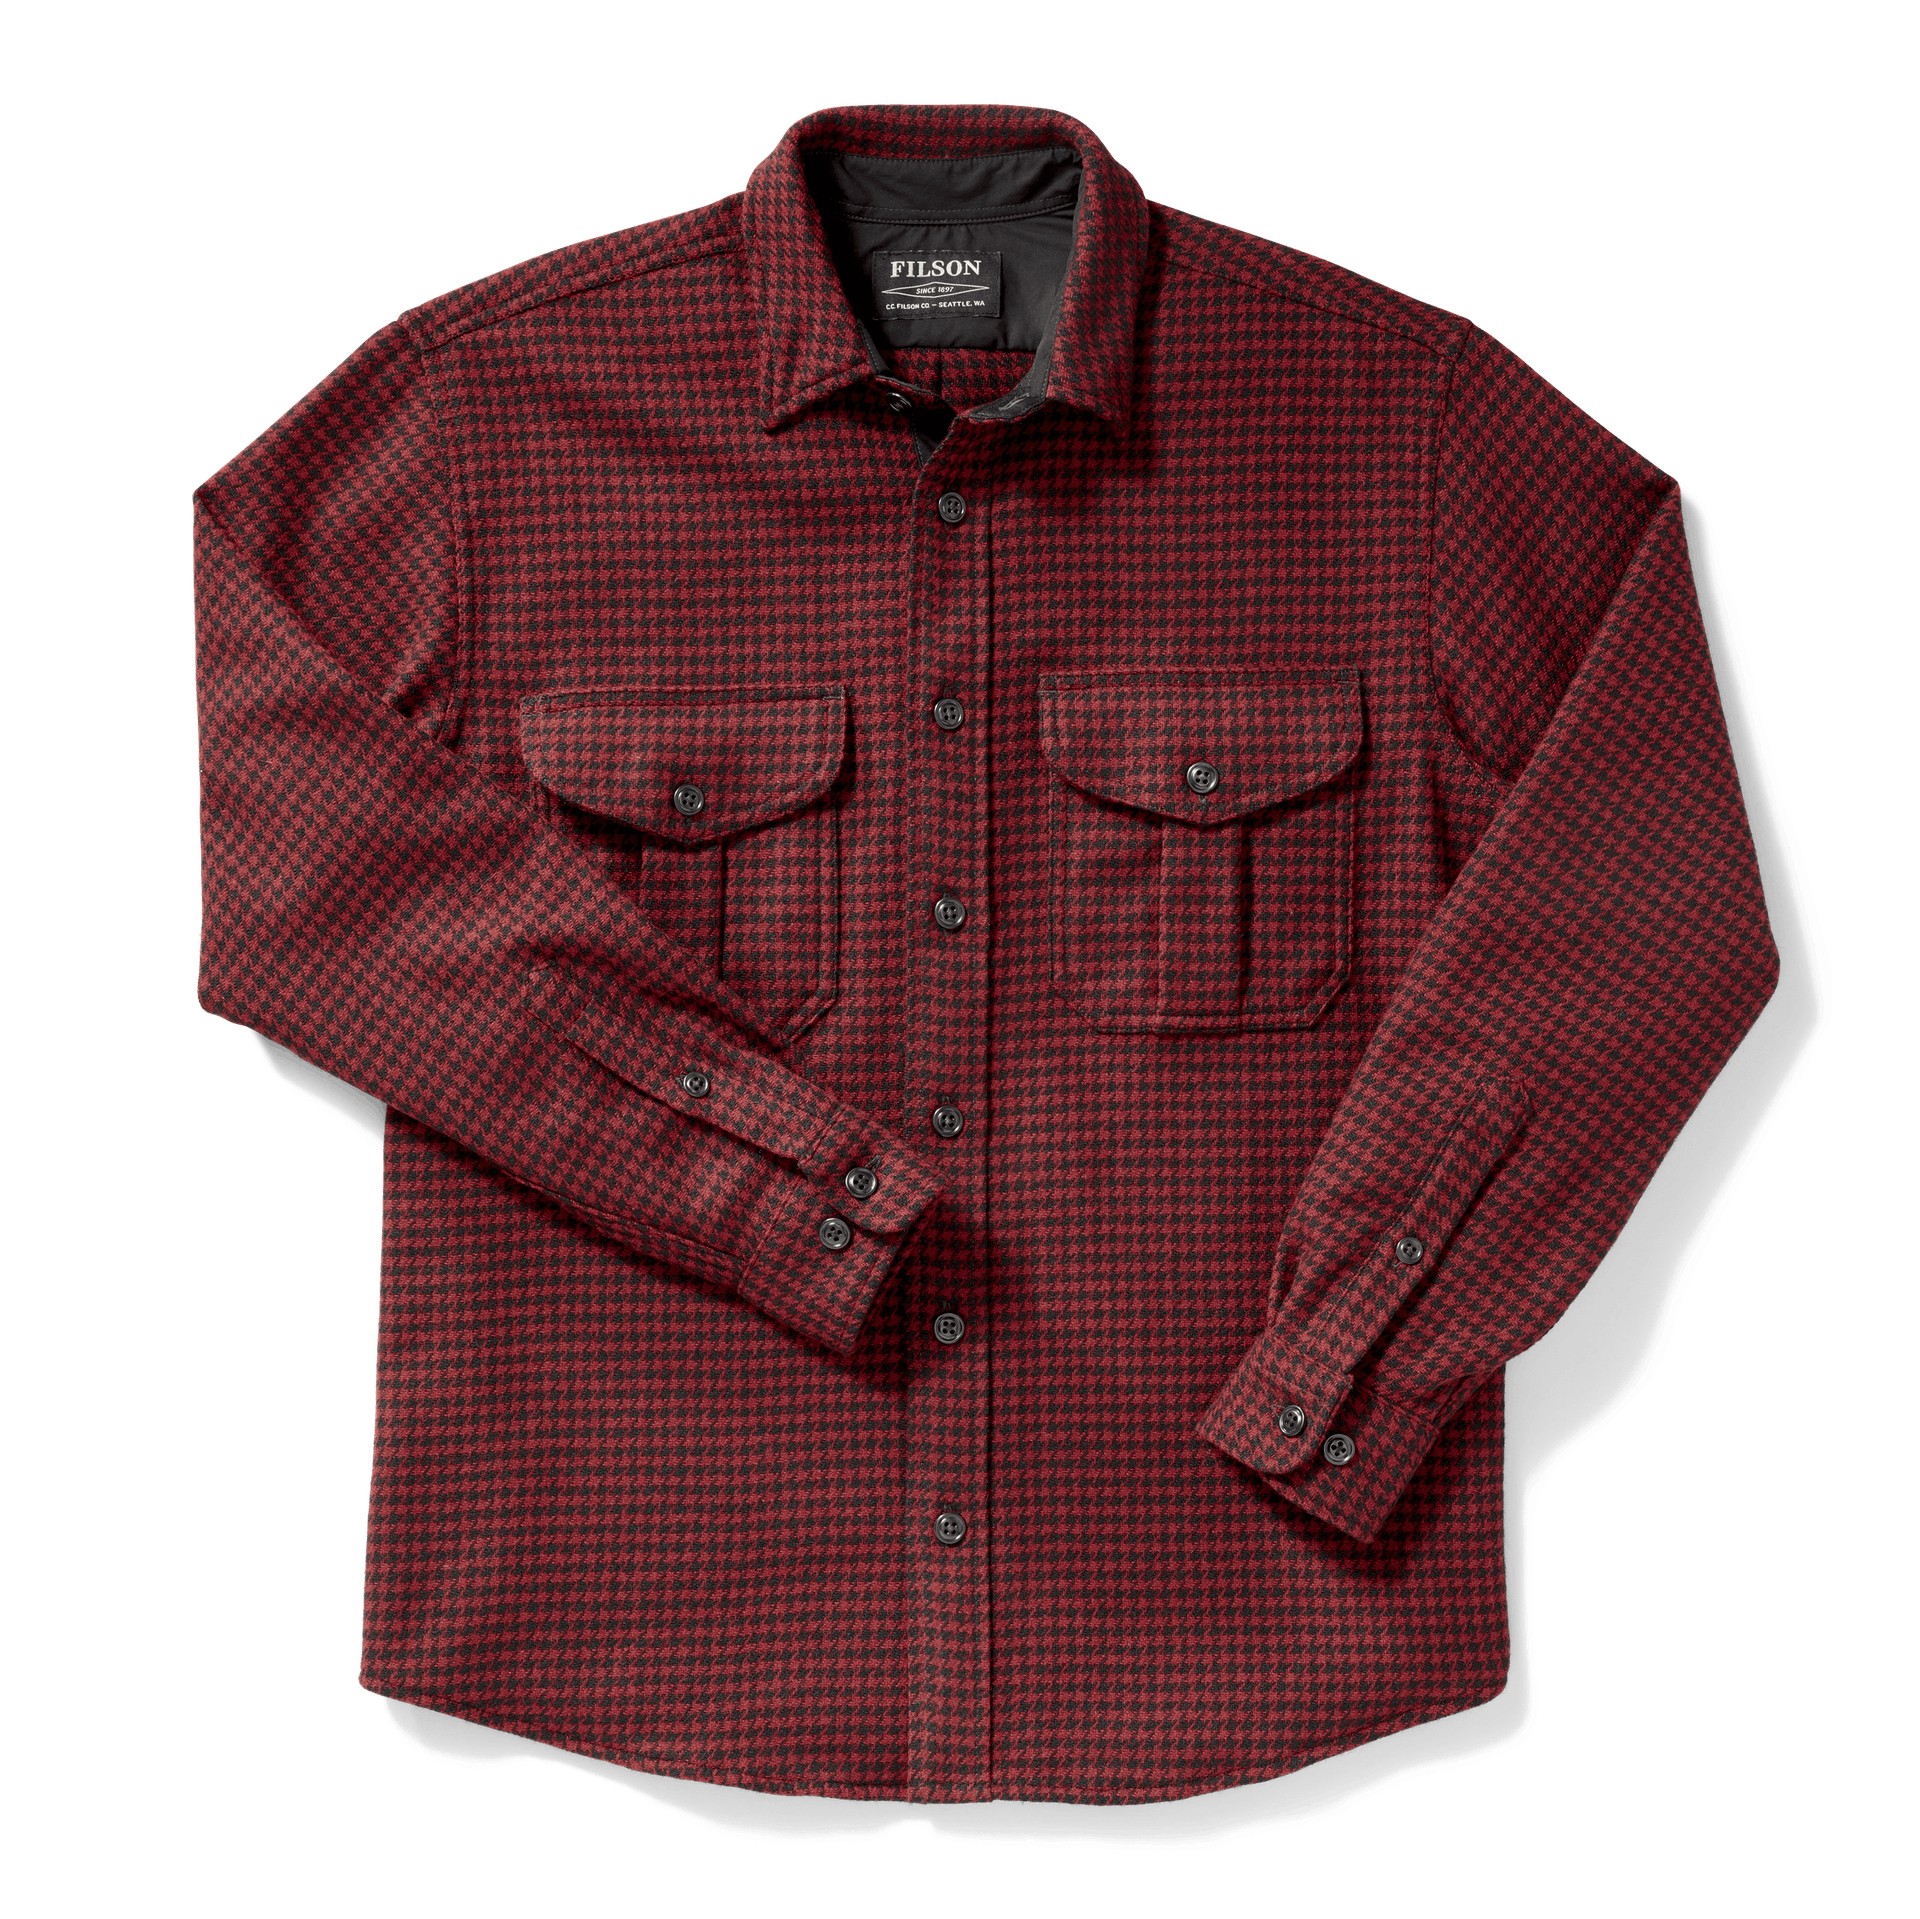 Filson Westlake Jacket Review Filson Bag Thread With